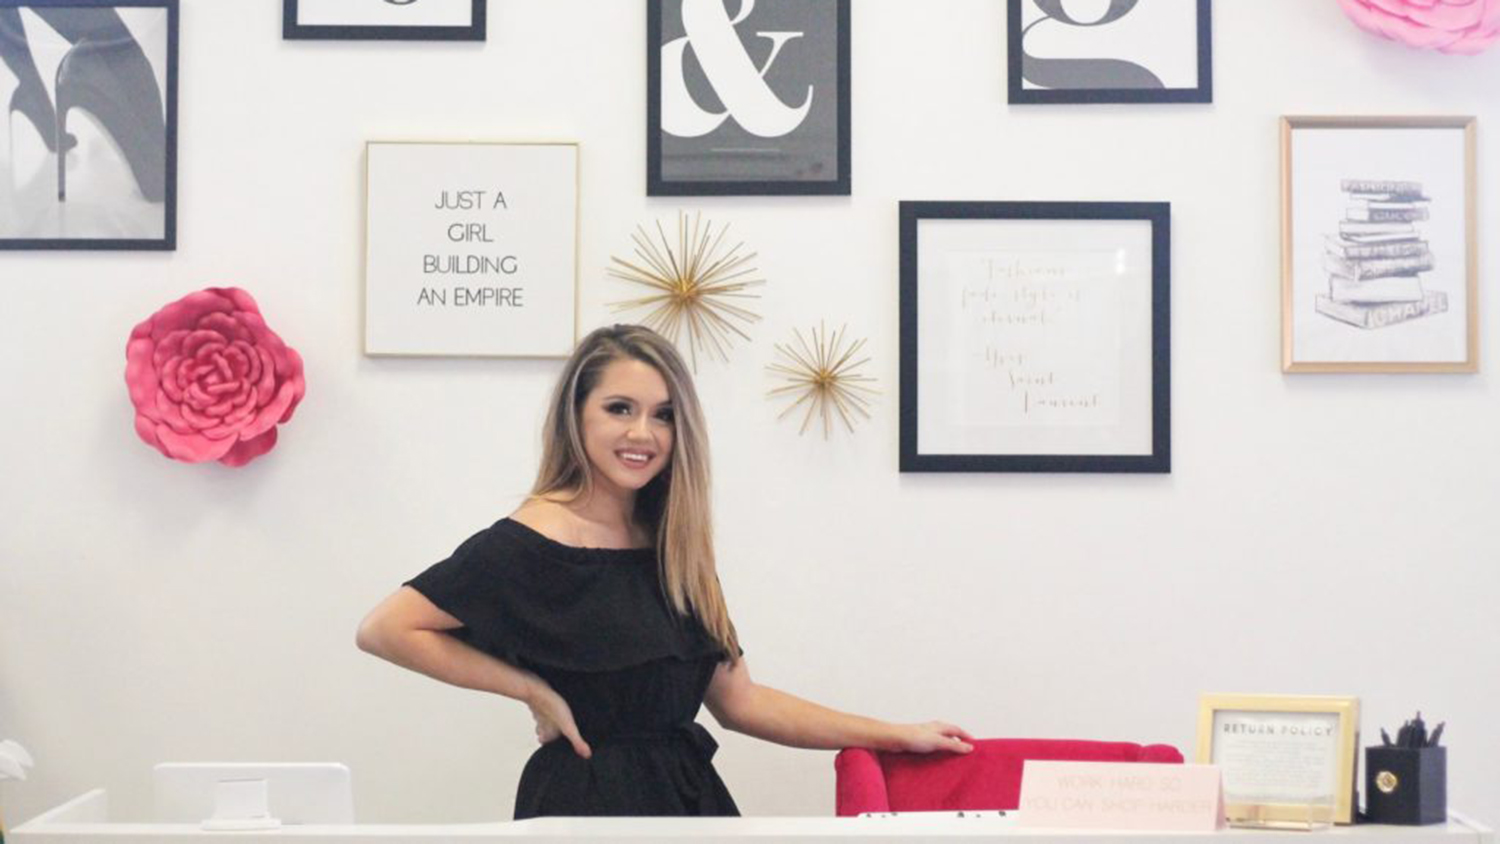 Emily Harris in front of Jack & Georgia gallery wall